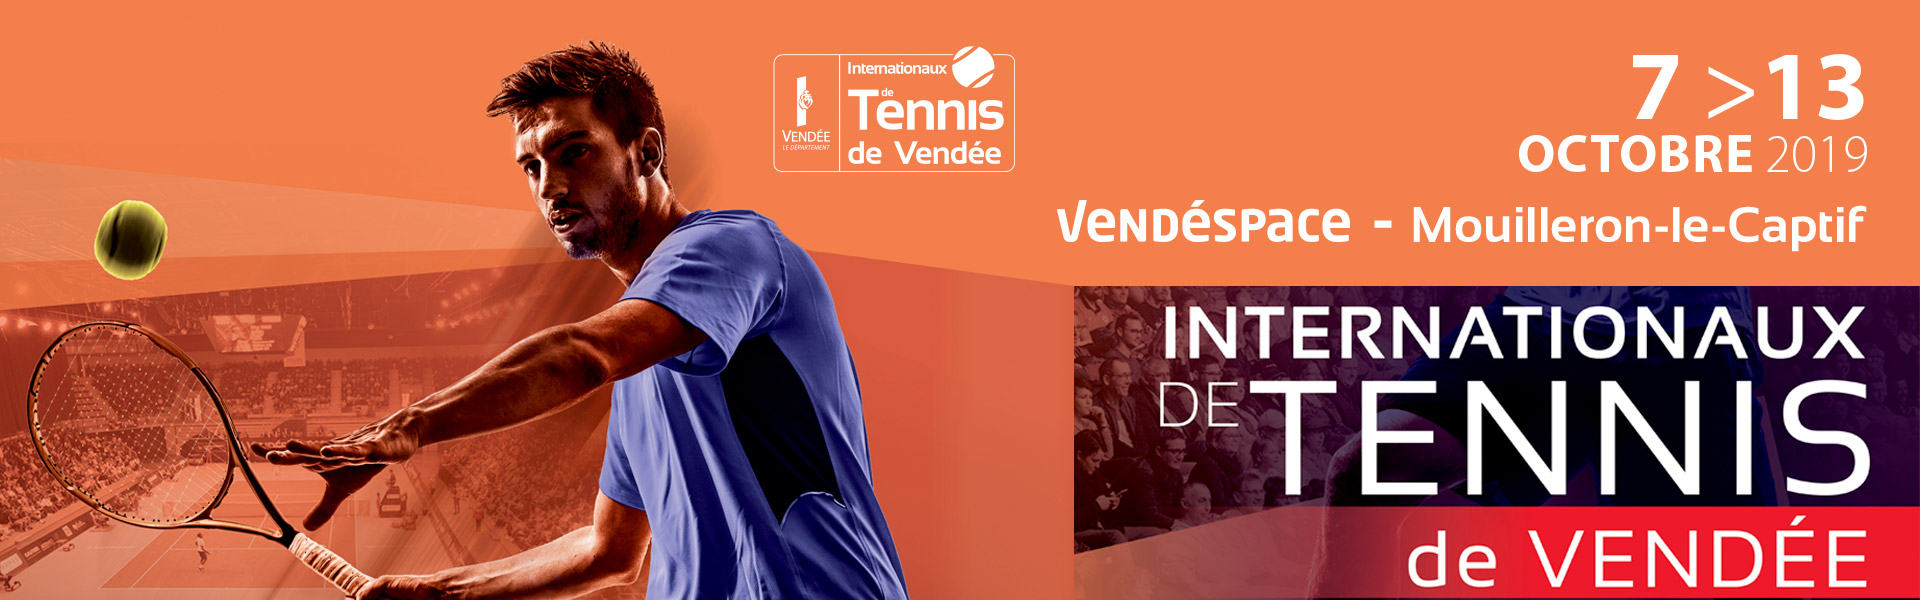 Internationaux de Tennis de Vendée